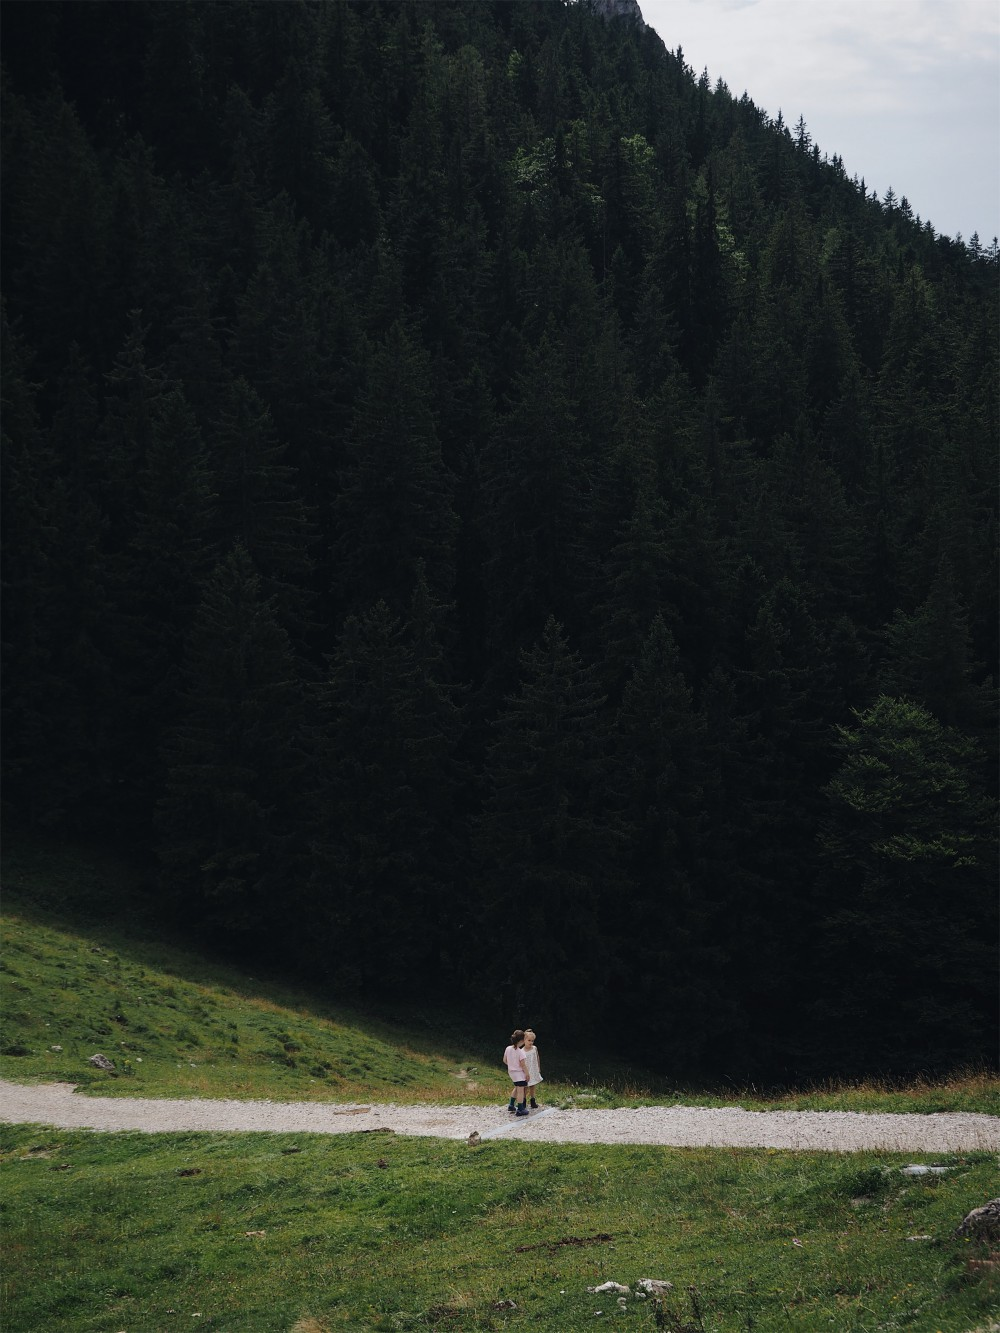 evafedeveka photography alps bavaria children kids outdoors hiking